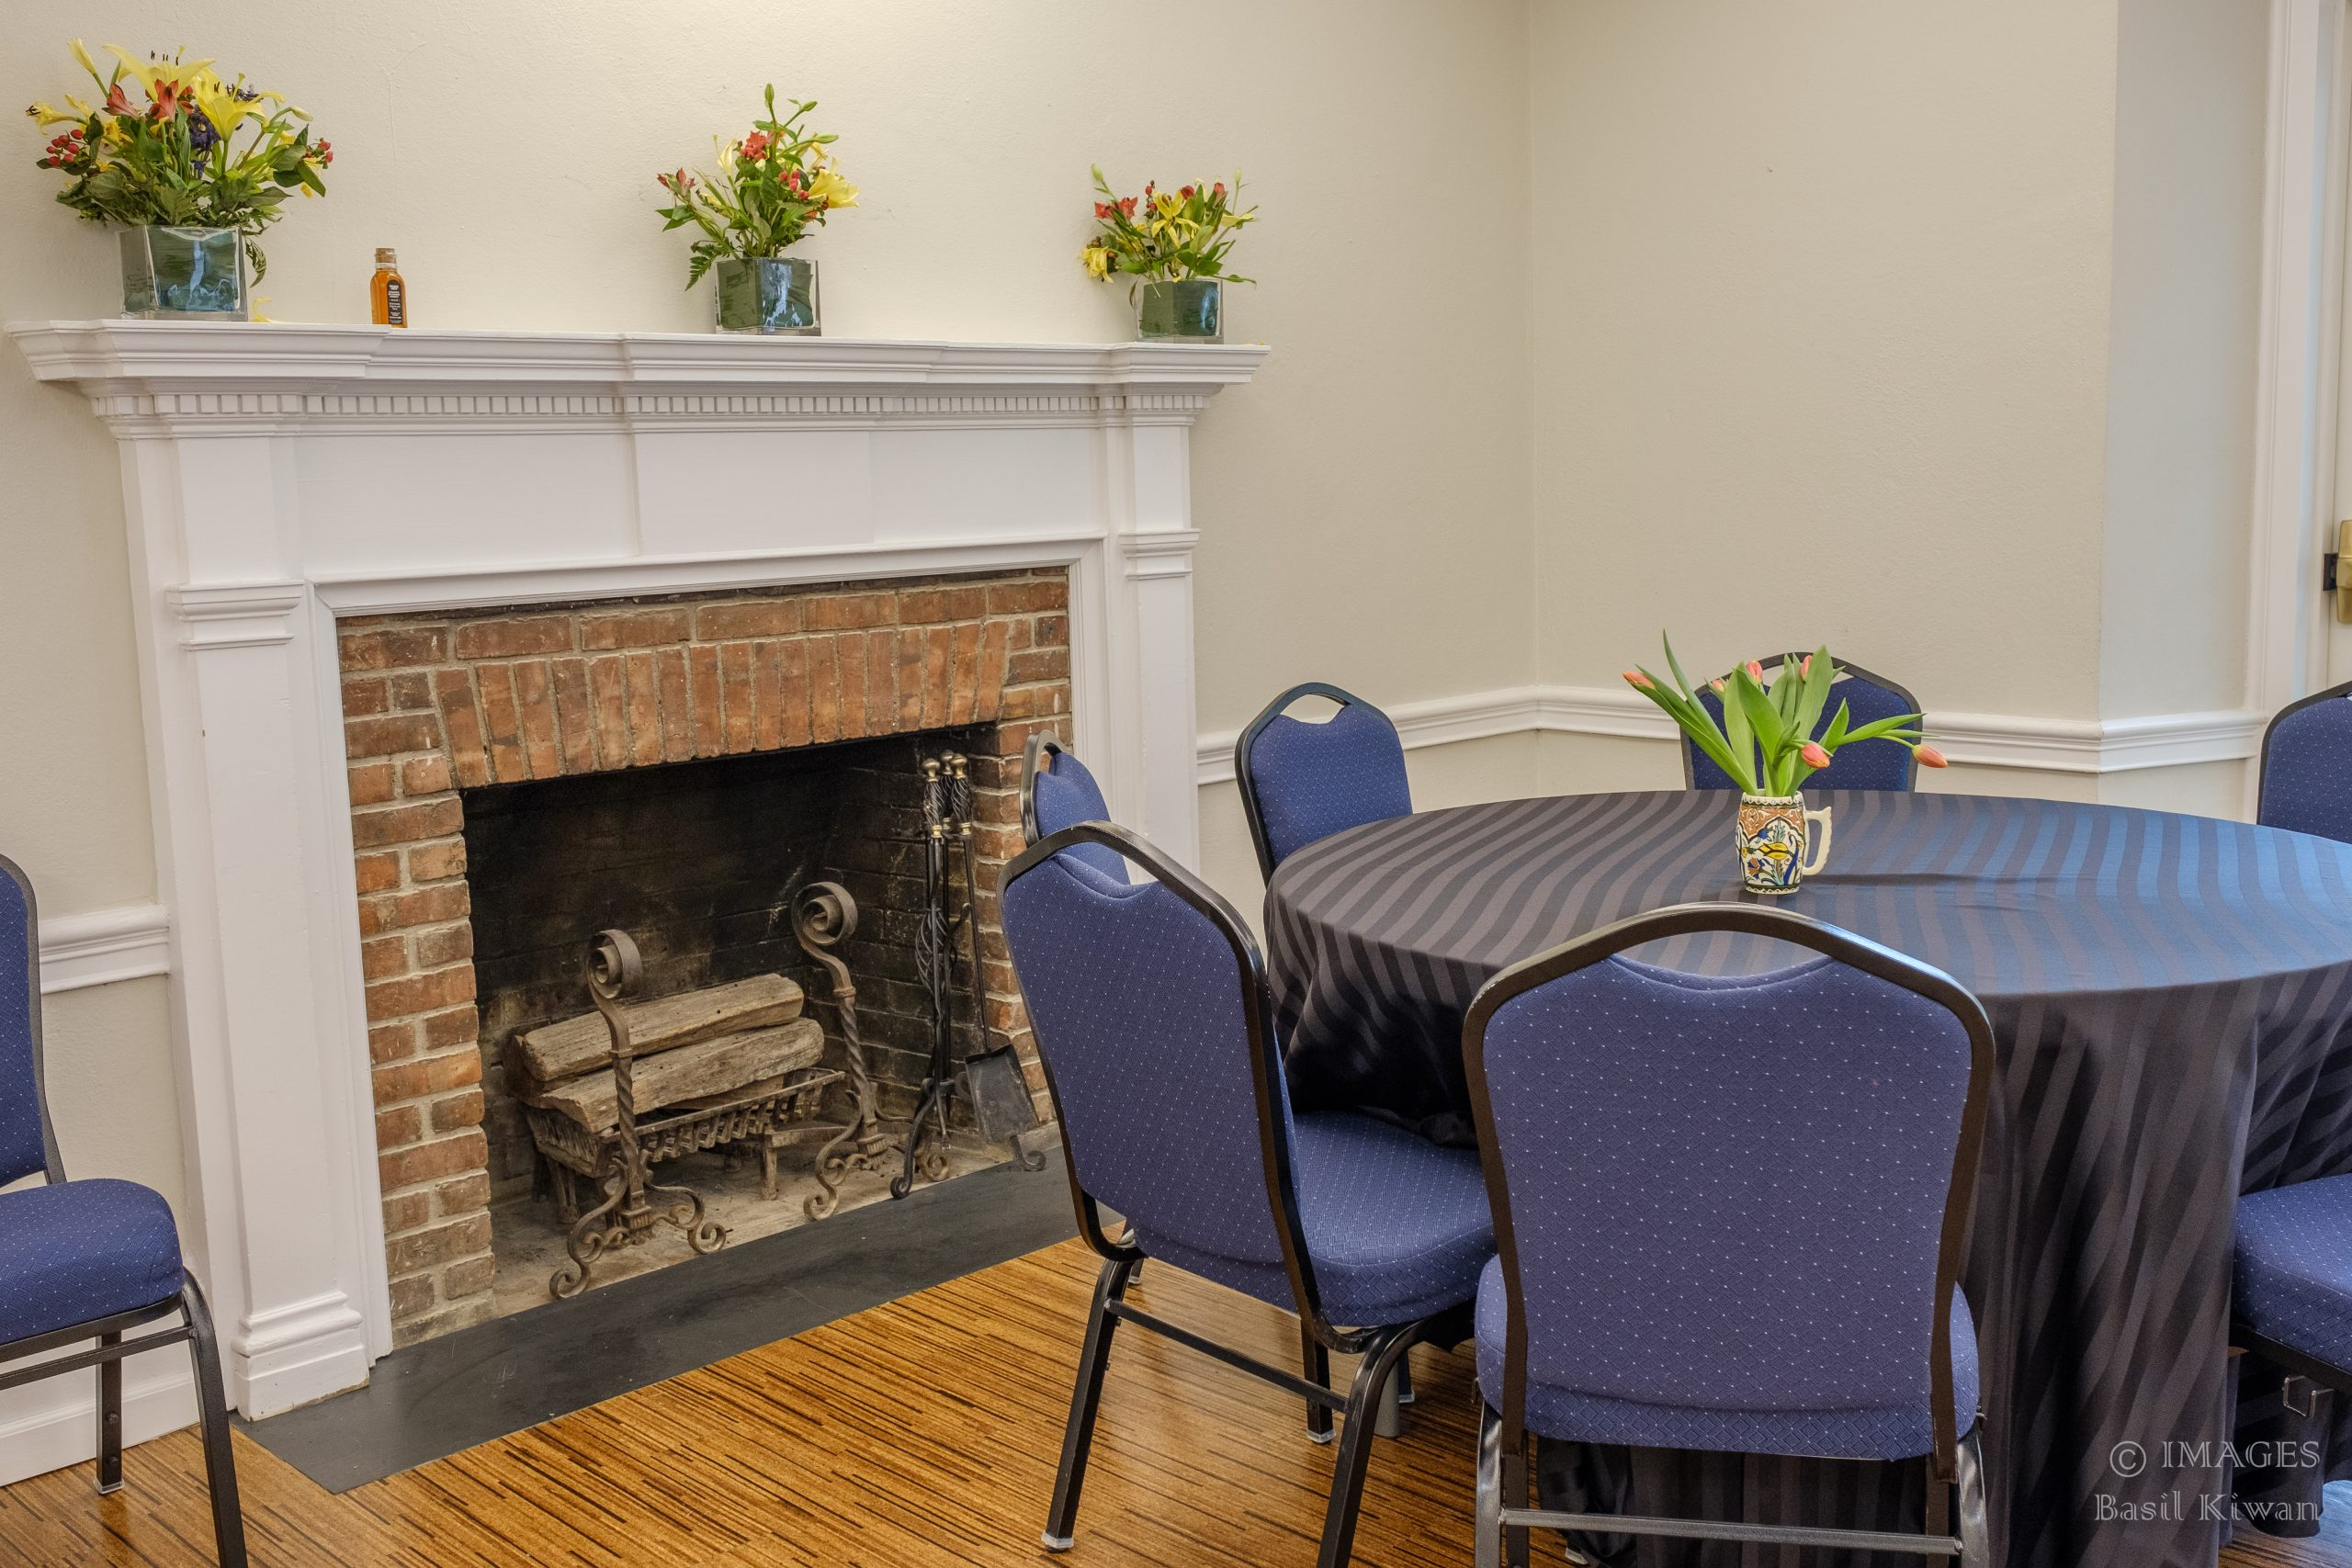 The Assembly Room's fireplace